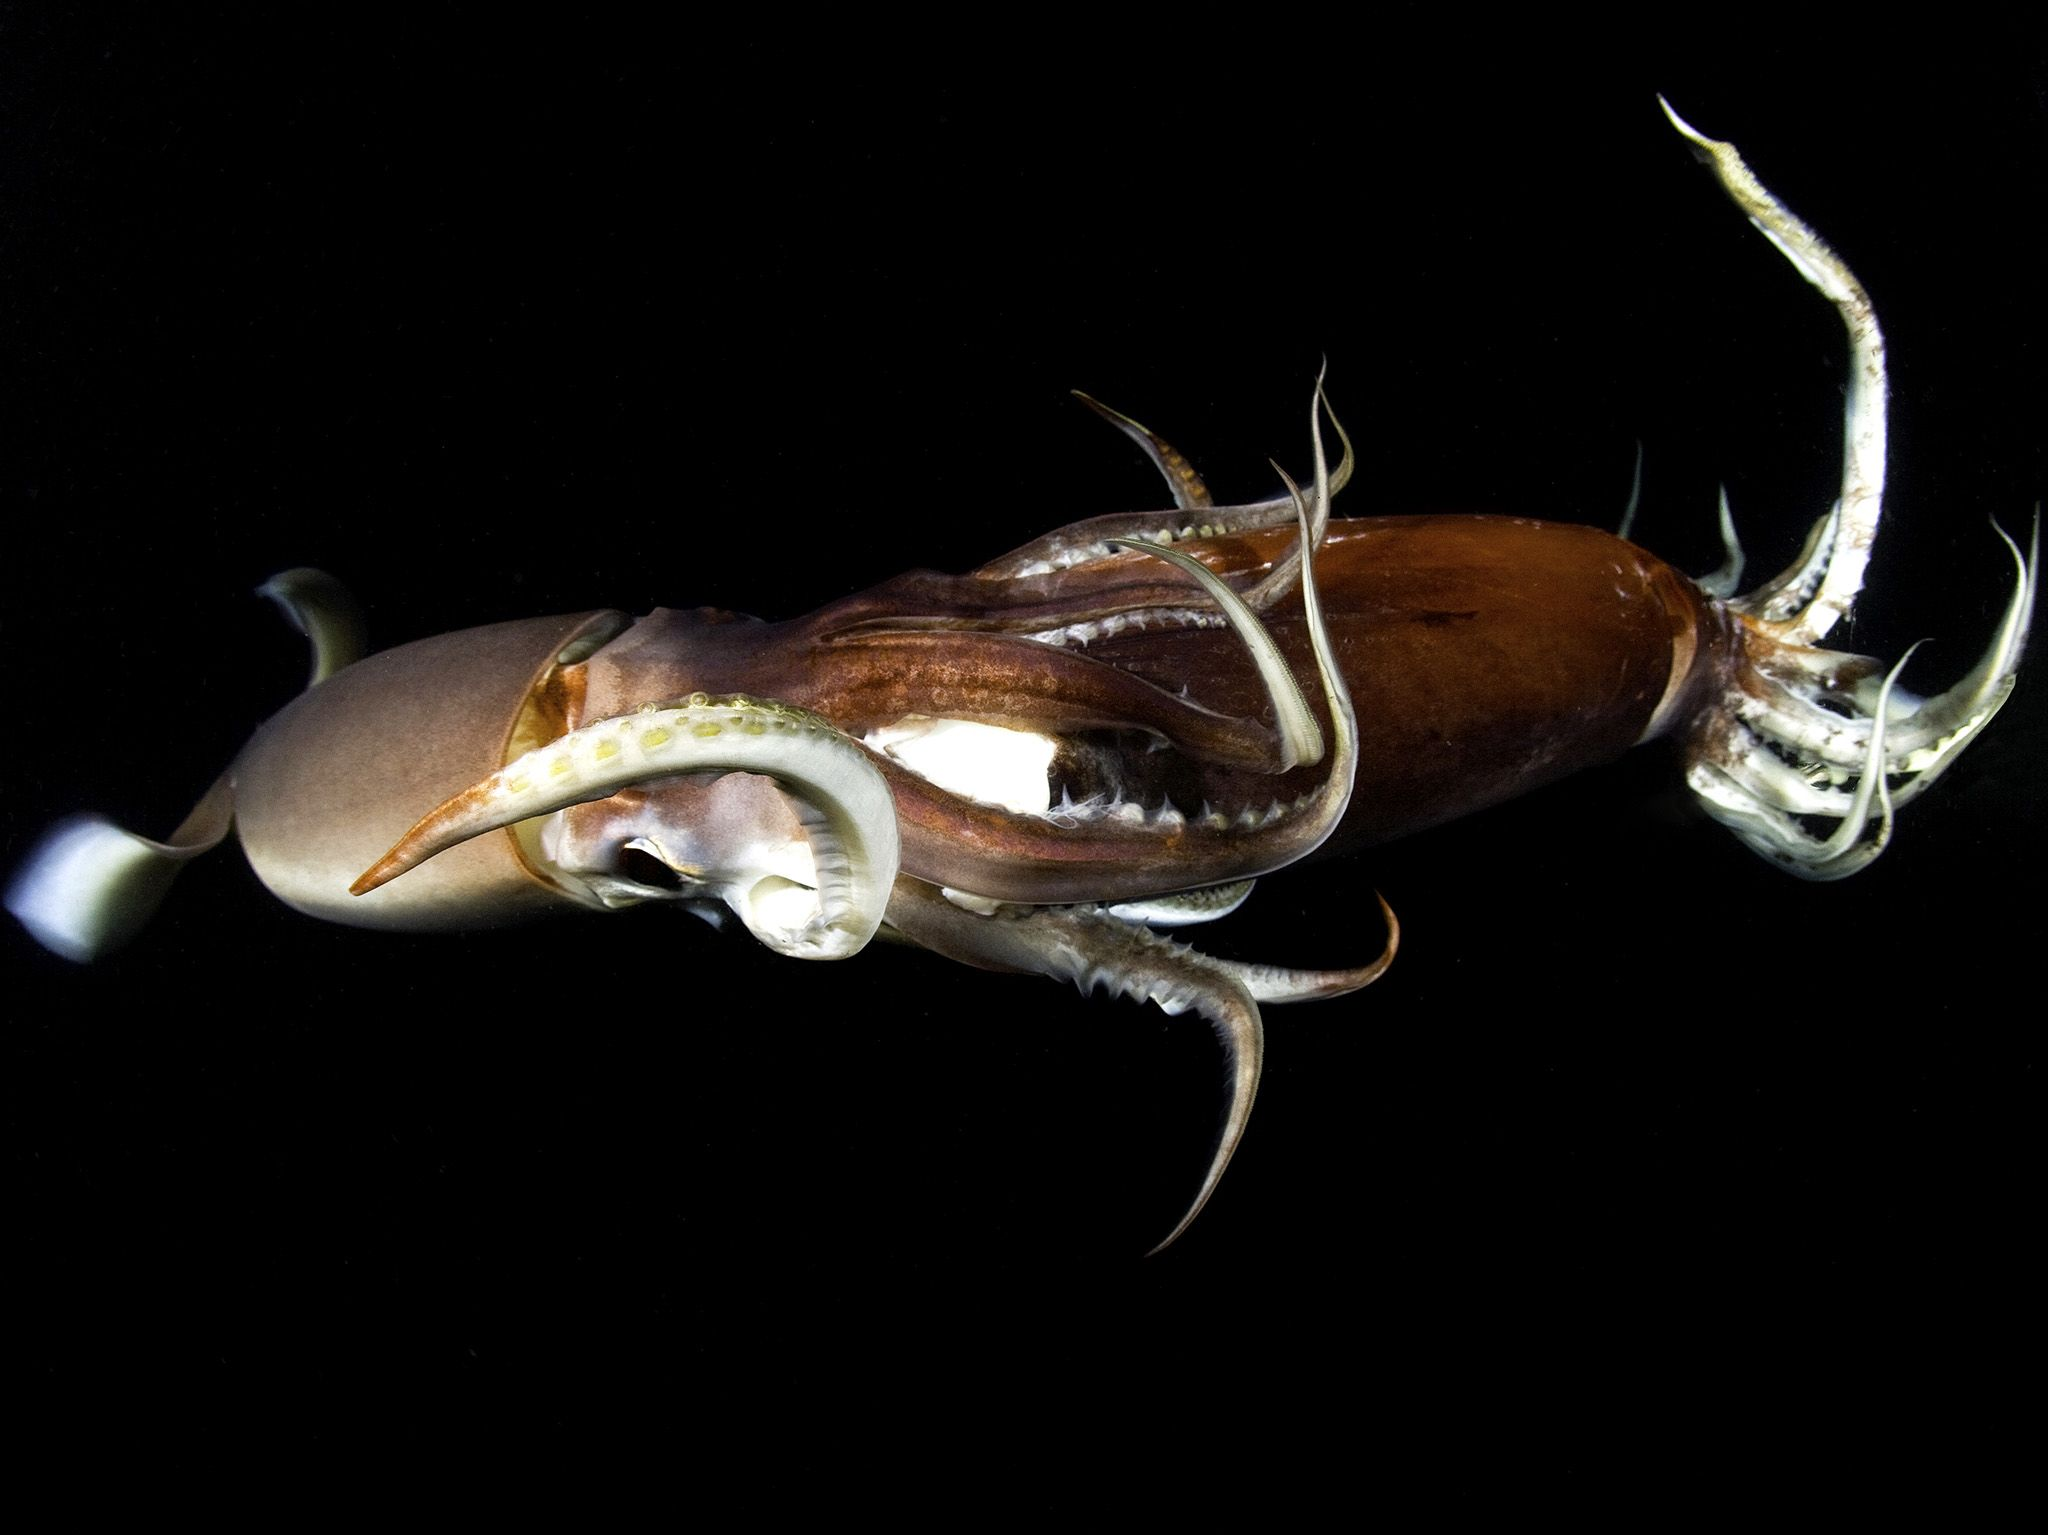 Humboldt squid eating another squid of the same species.  This image is from Animal Fight Club. [Photo of the day - August 2020]